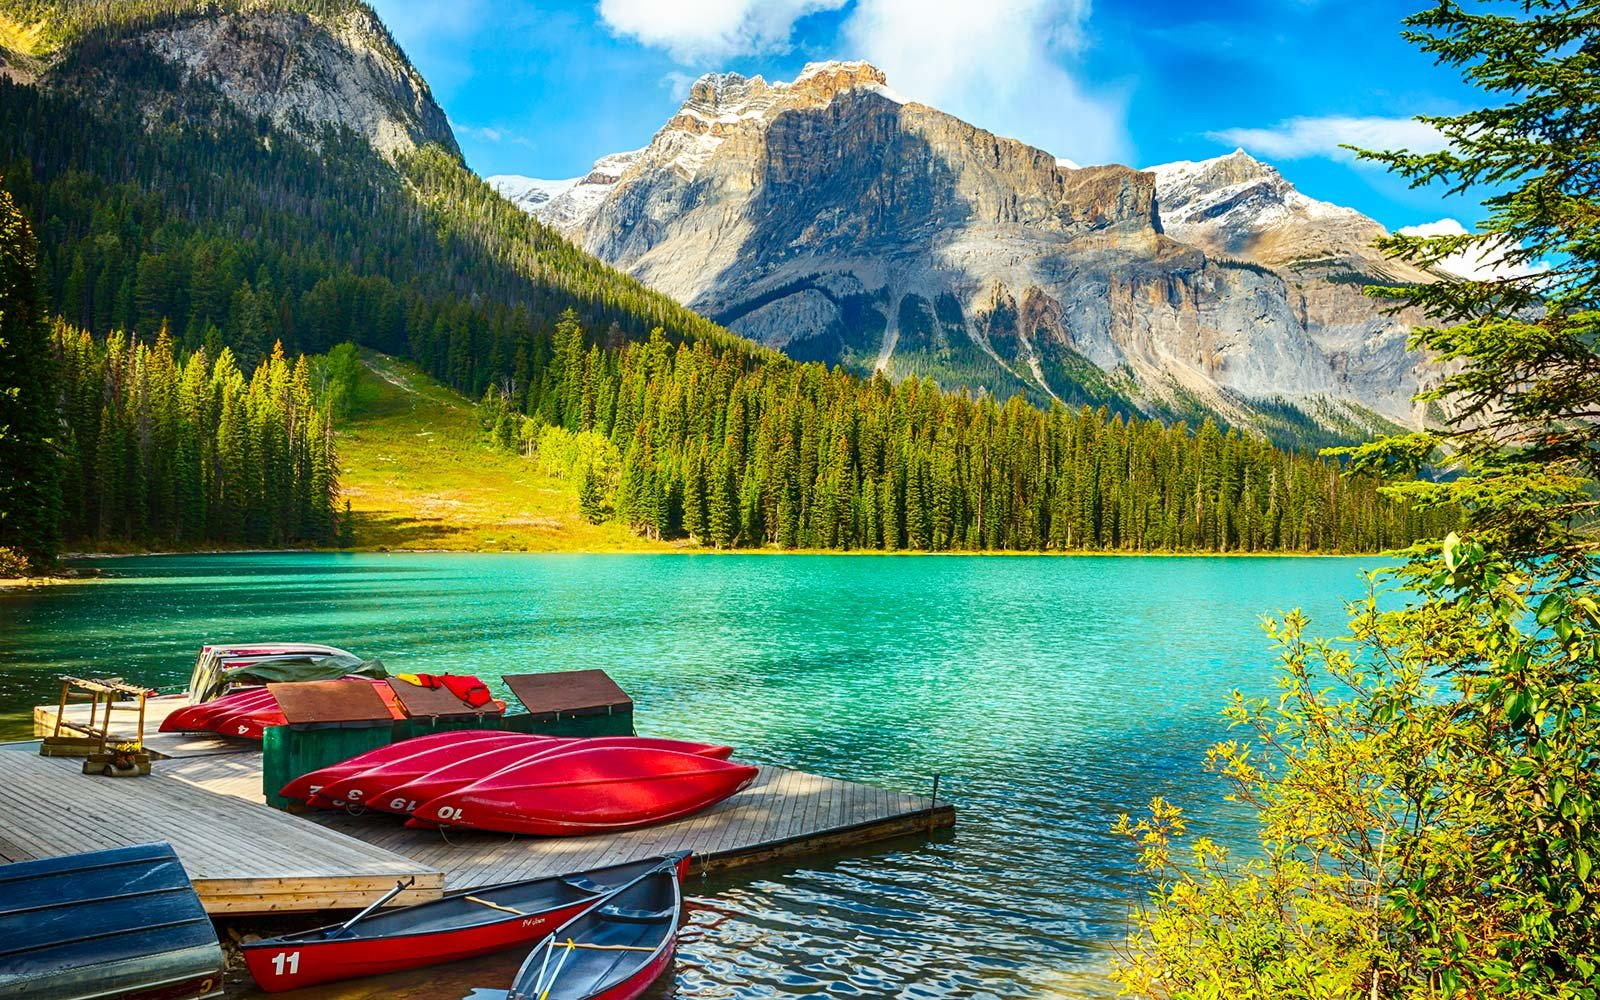 Emerald Lake, Yoho National Park, British Columbia, Canada Delta Fare Summer Birthday Sale Deal